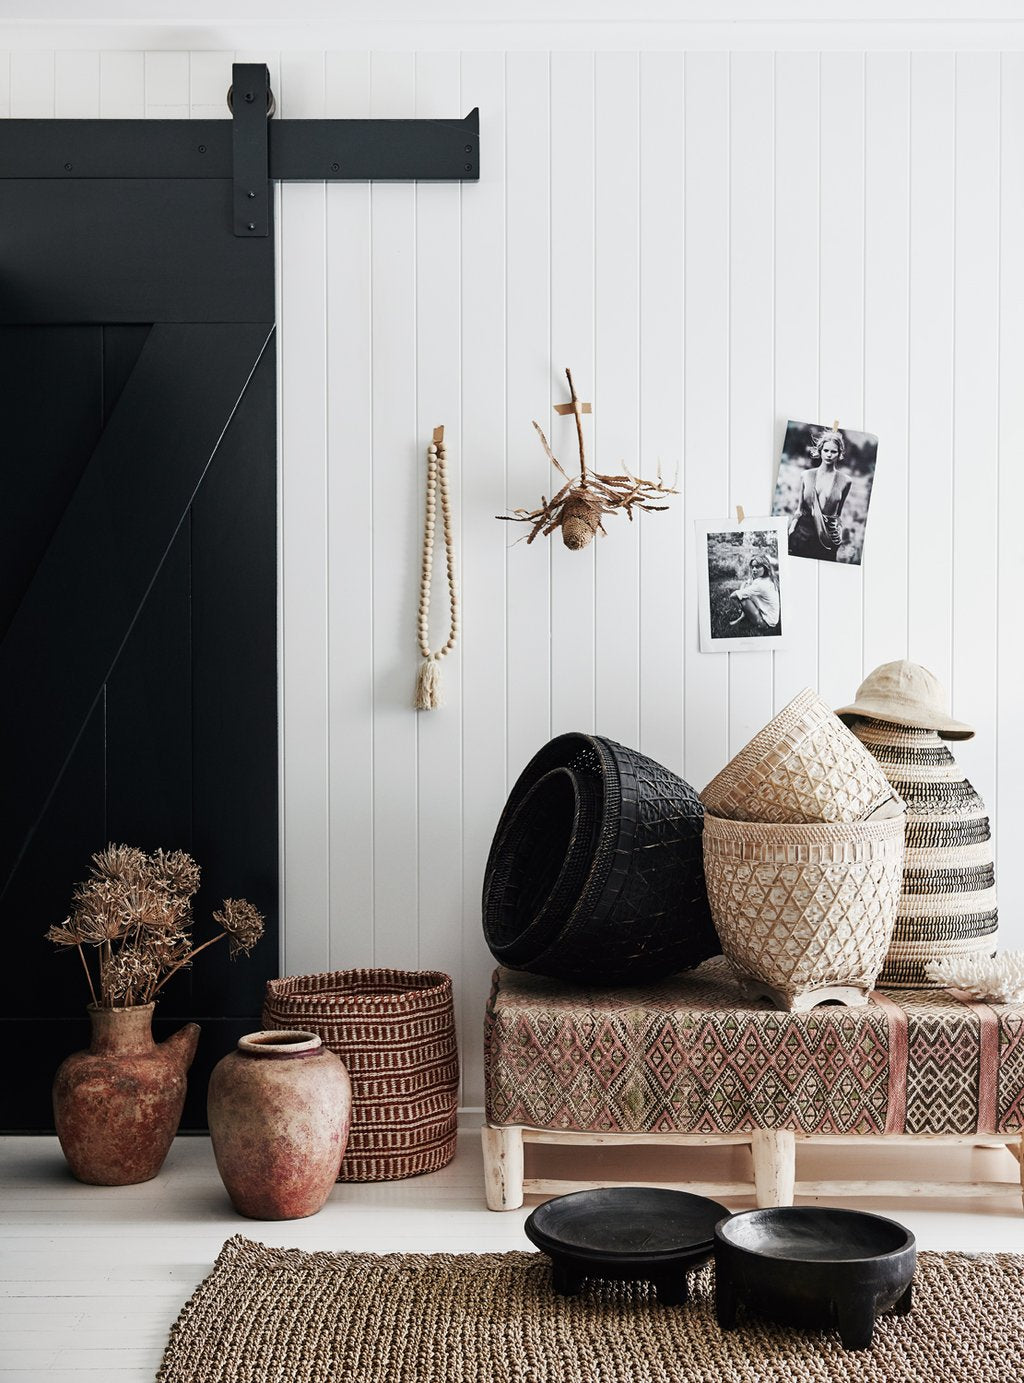 HOMEWARE / DECOR ACCENTS